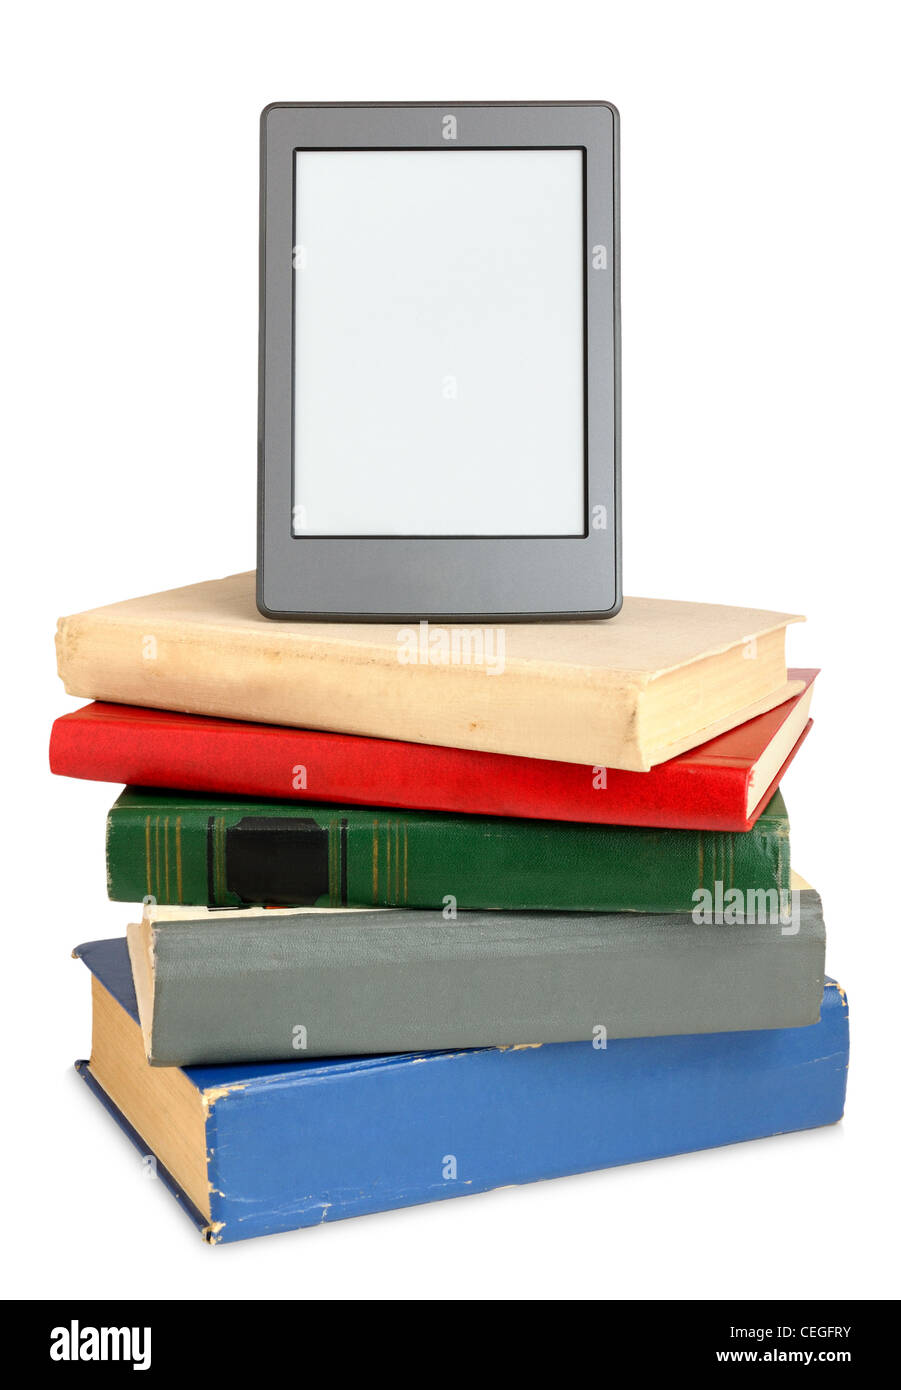 Ebook on pile of old books isolated on white background - Stock Image